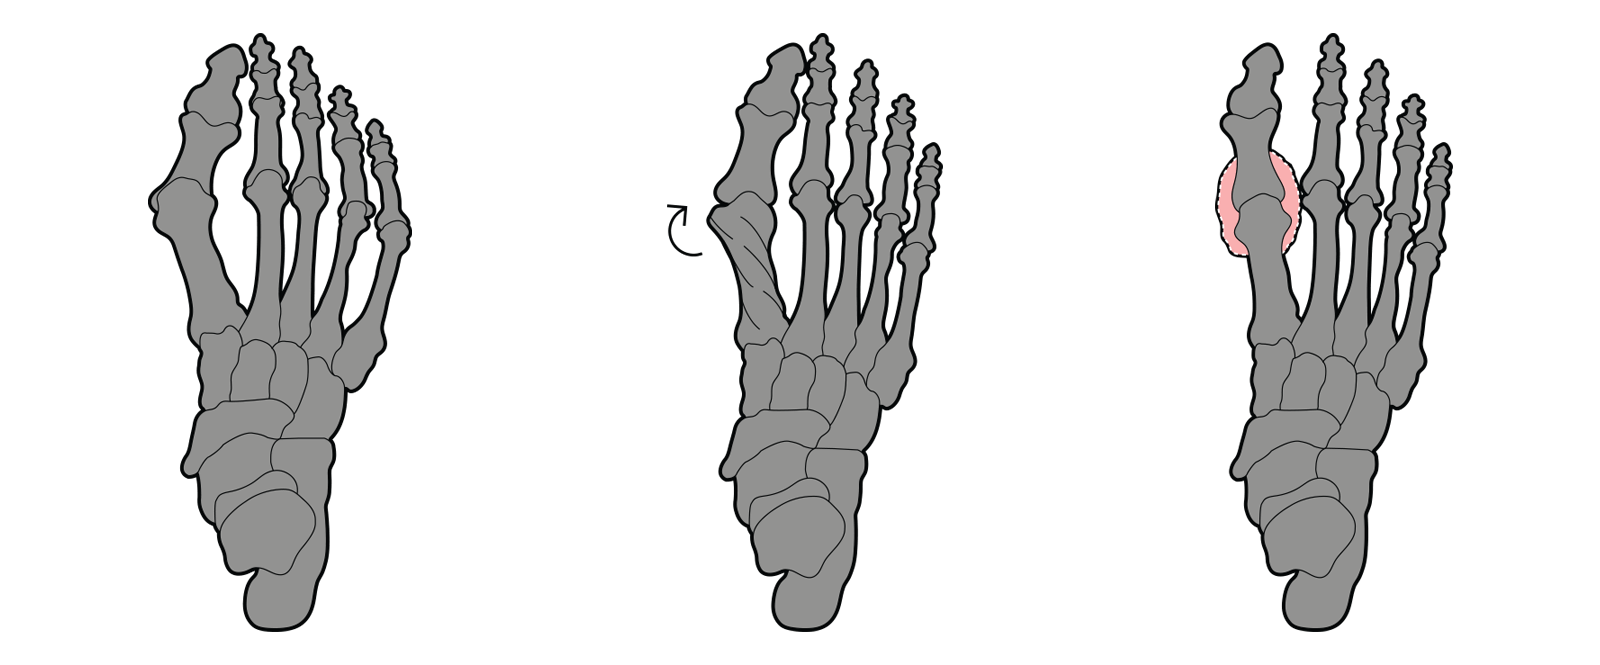 https://dubaipodiatry.com/wp-content/uploads/2021/09/Slider-New-Images_Bunion-1.png